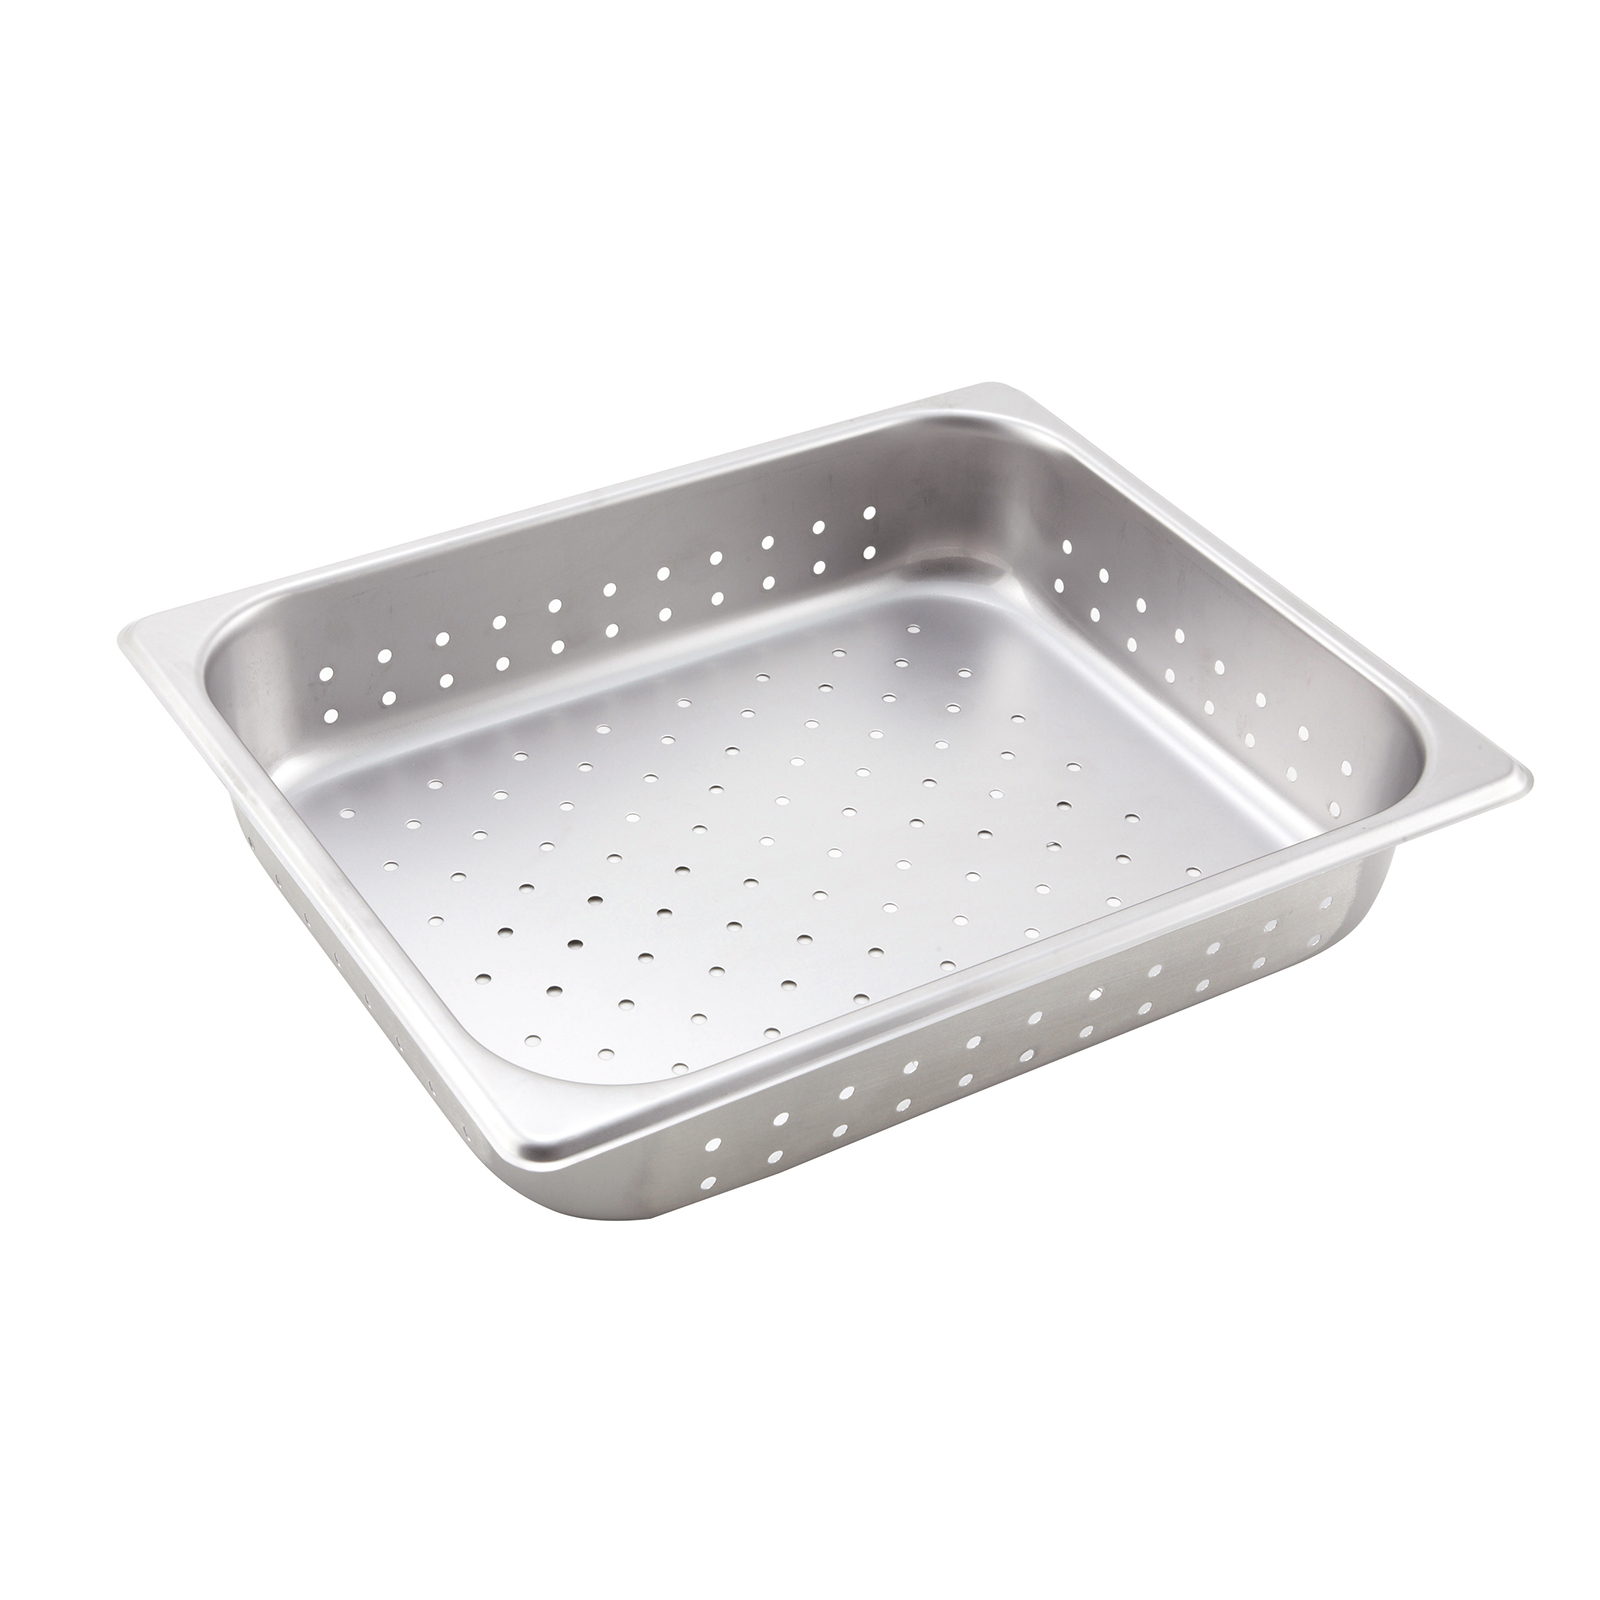 2400-131 Winco SPHP2 steam table pan, stainless steel